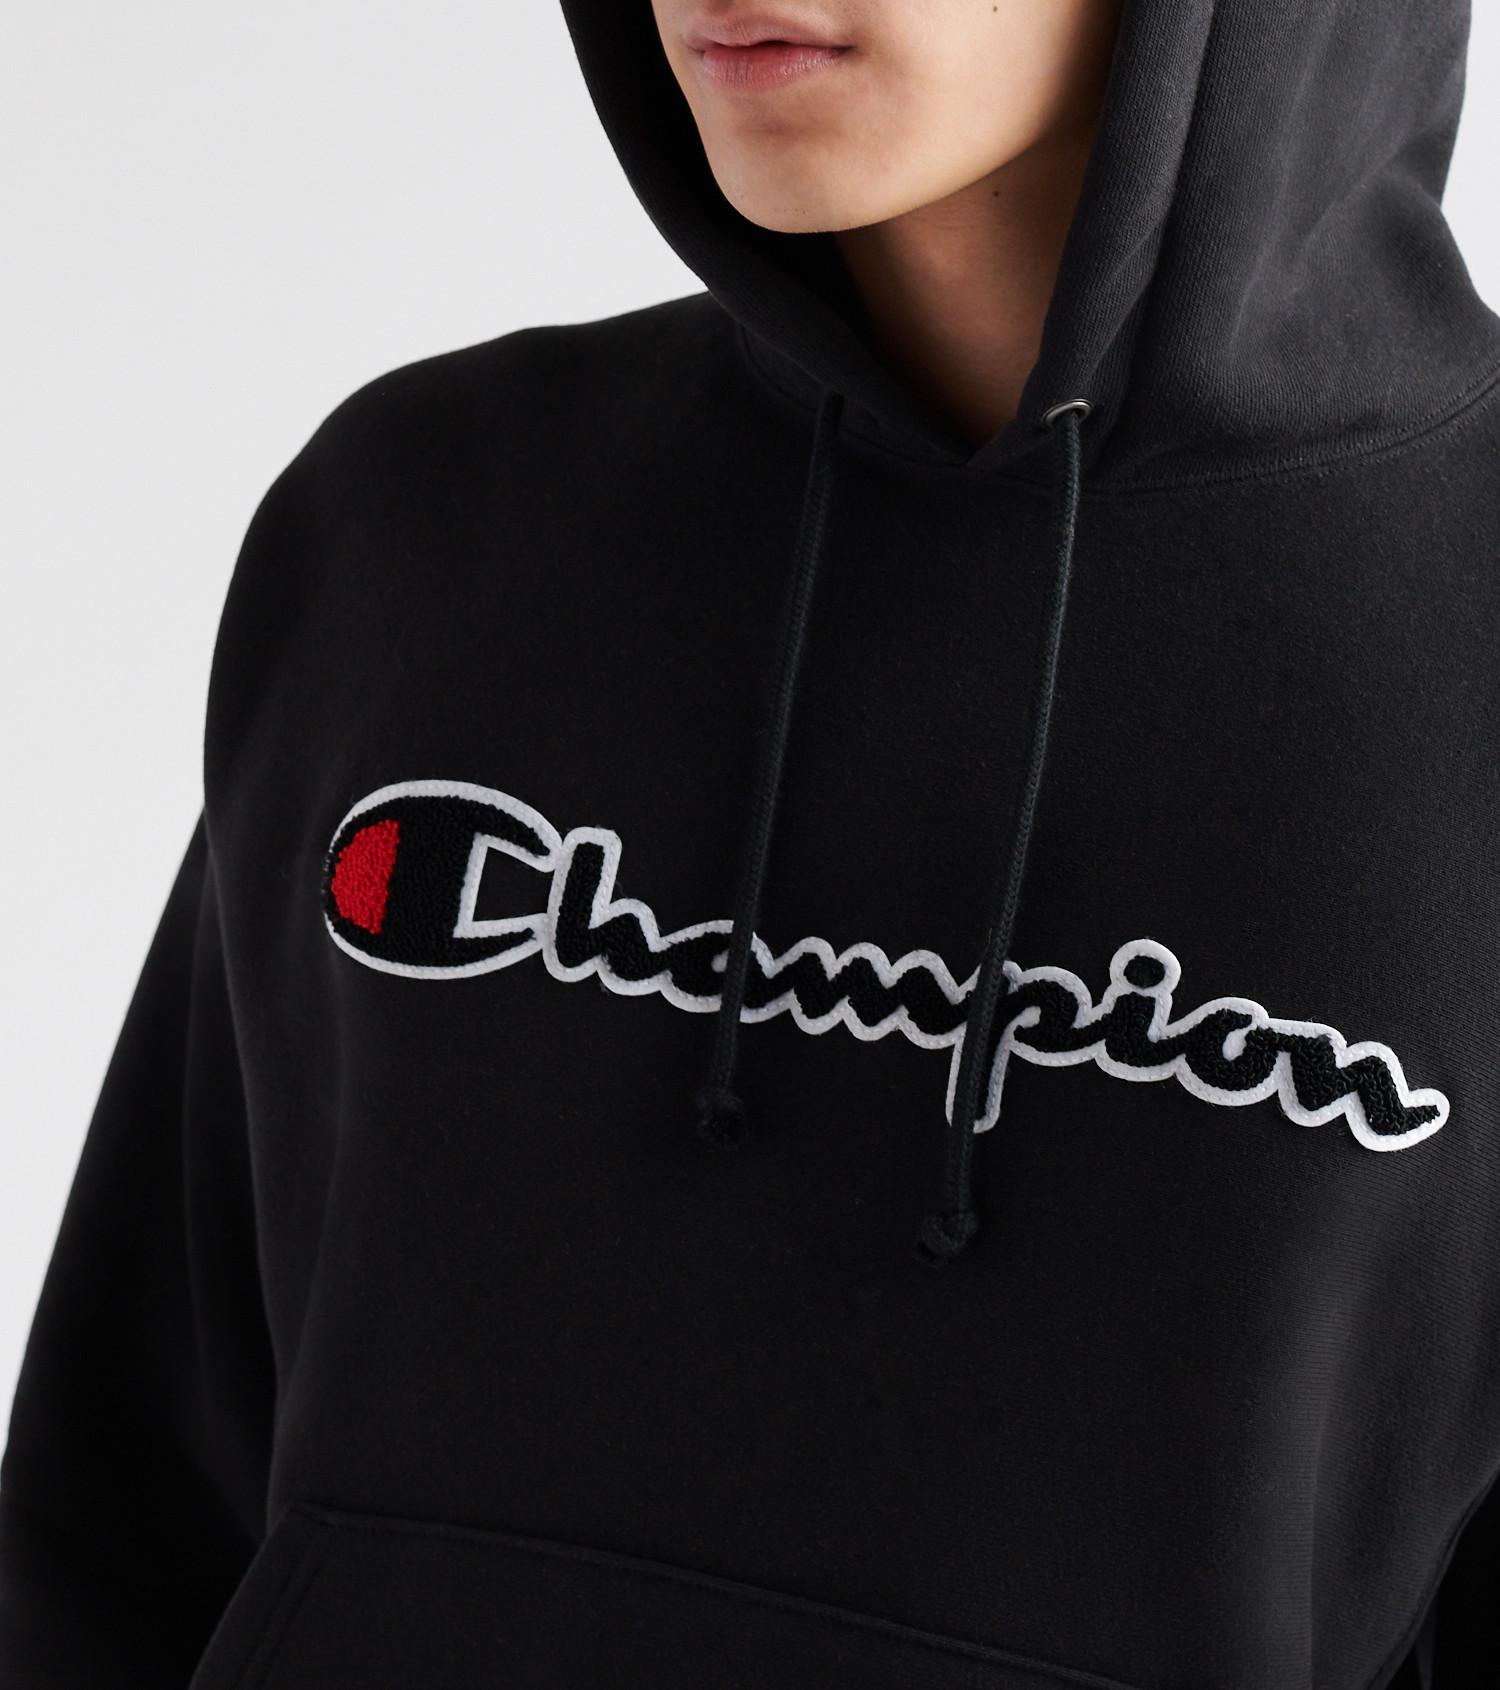 298aaf33a4b1 Champion - Black Reverse Weave Pullover Hoodie for Men - Lyst. View  fullscreen